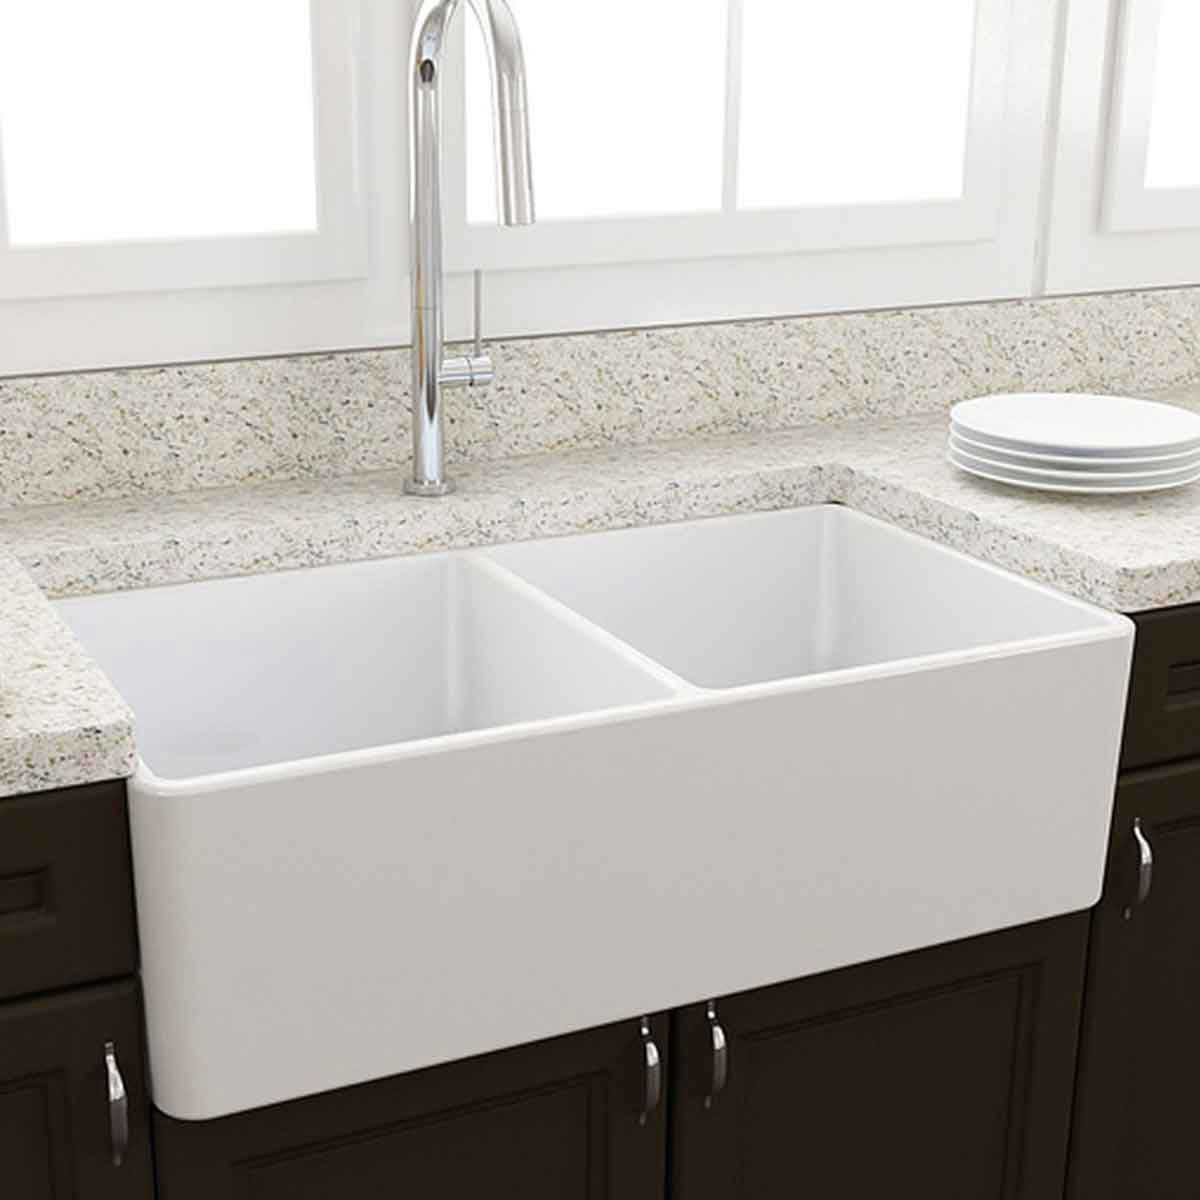 Artisan Double Bowl Fireclay Sink